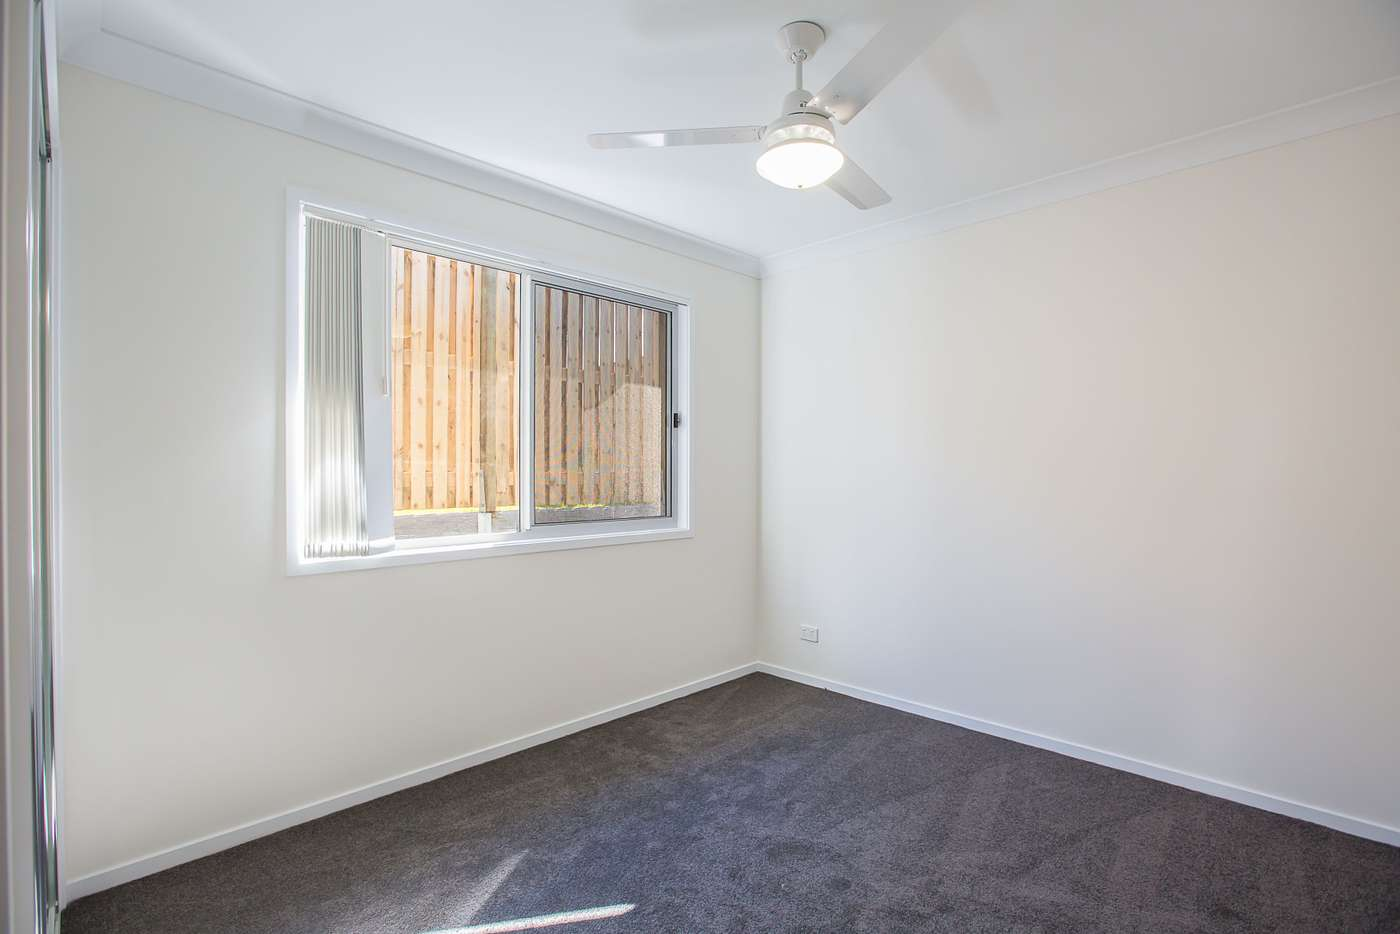 Sixth view of Homely house listing, 1/1 Lauenstein Crescent, Pimpama QLD 4209